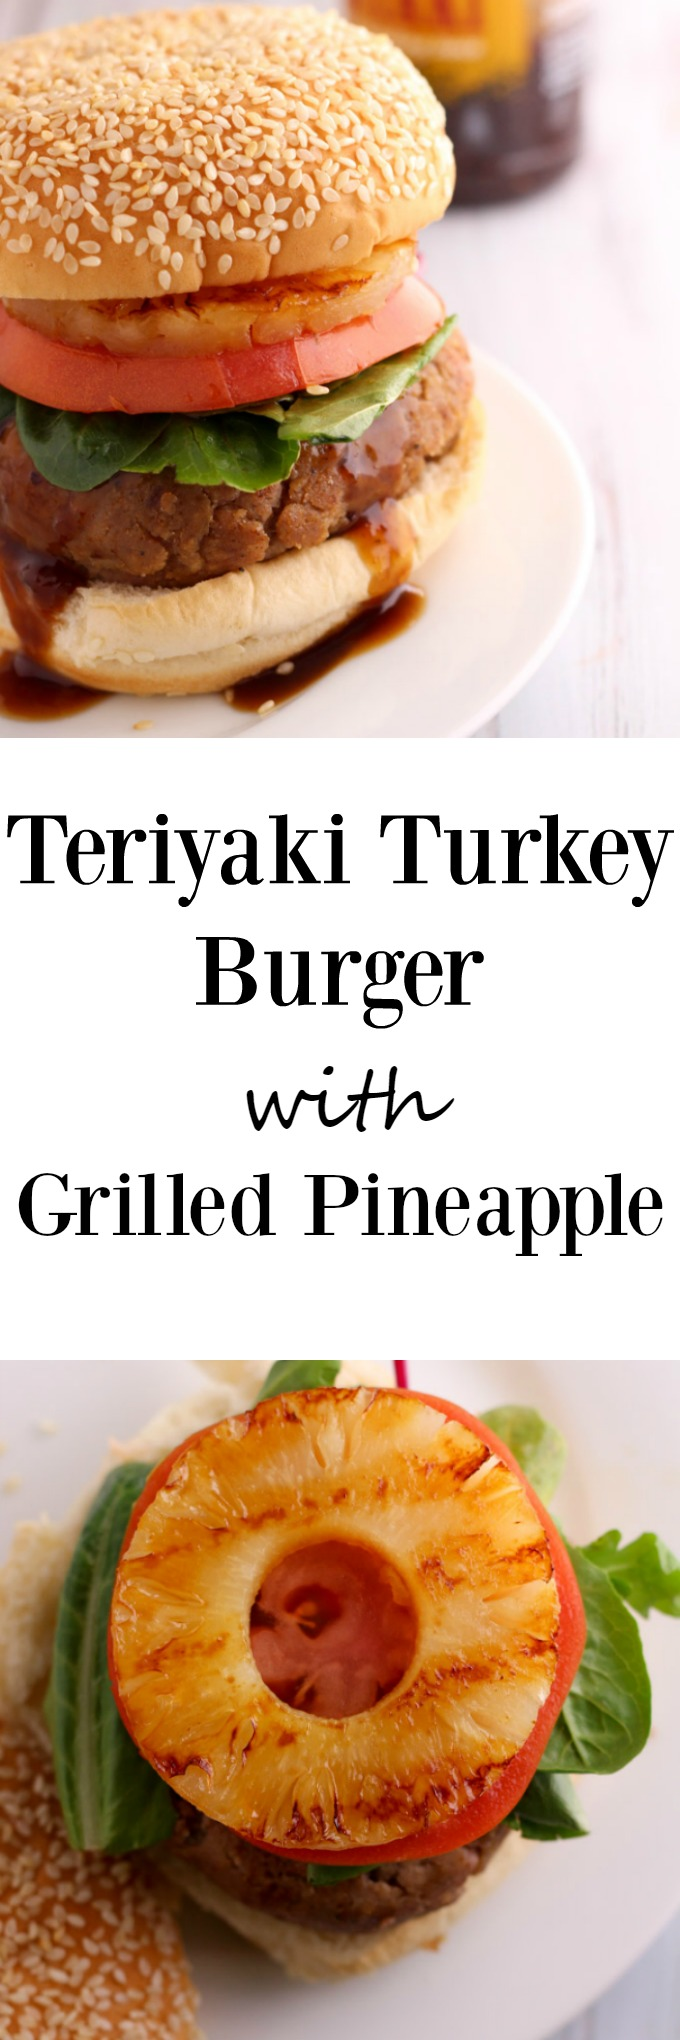 Teriyaki Turkey Burgers - Cooking is Messy